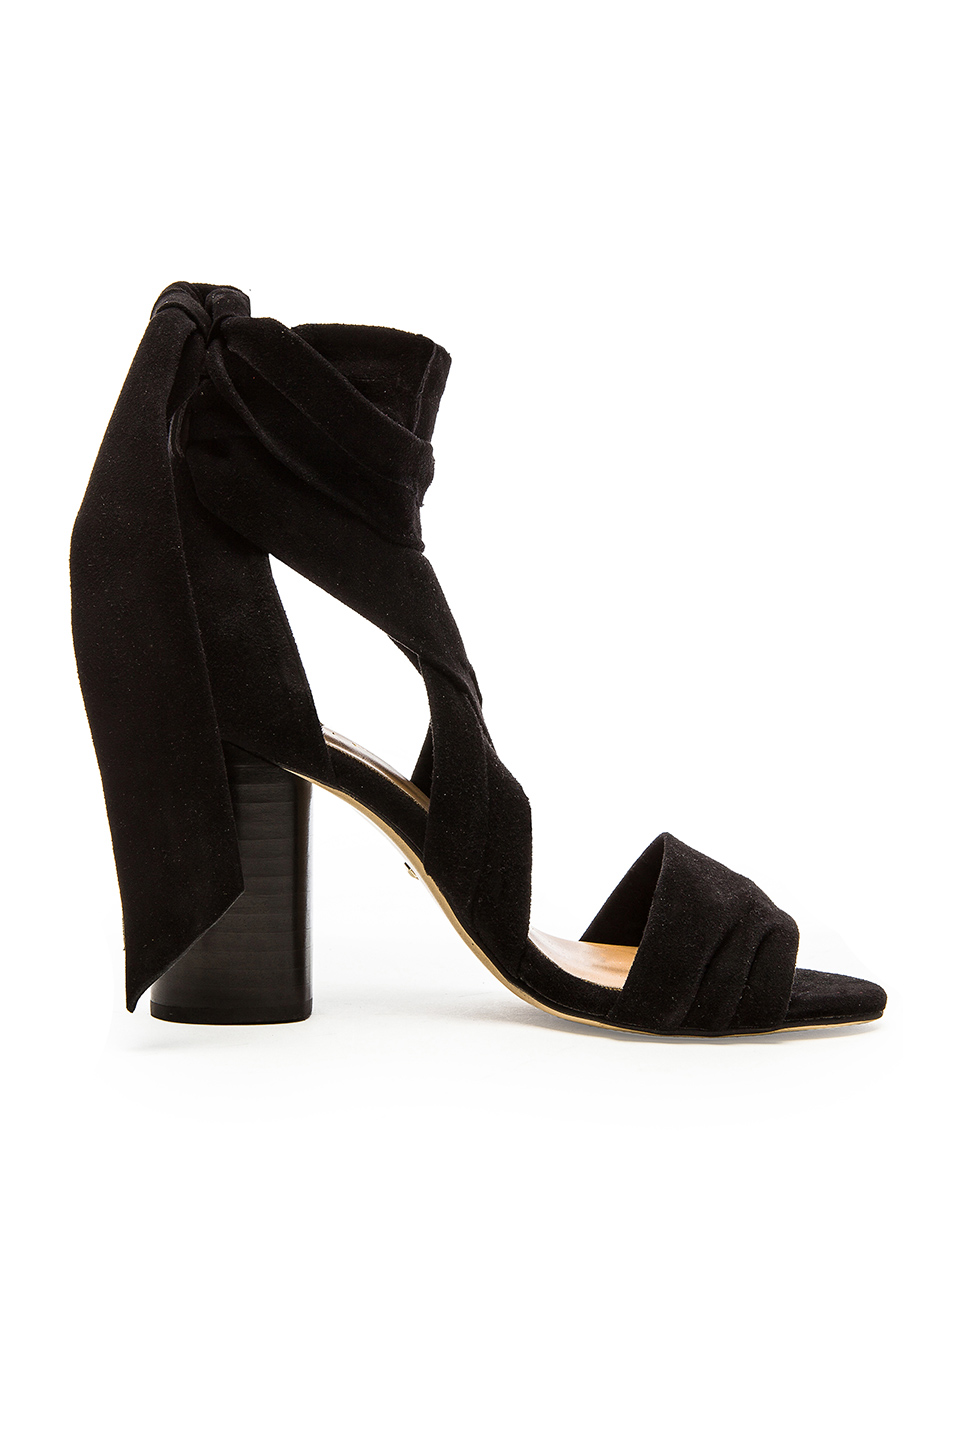 RAYE Mia Heel in Black